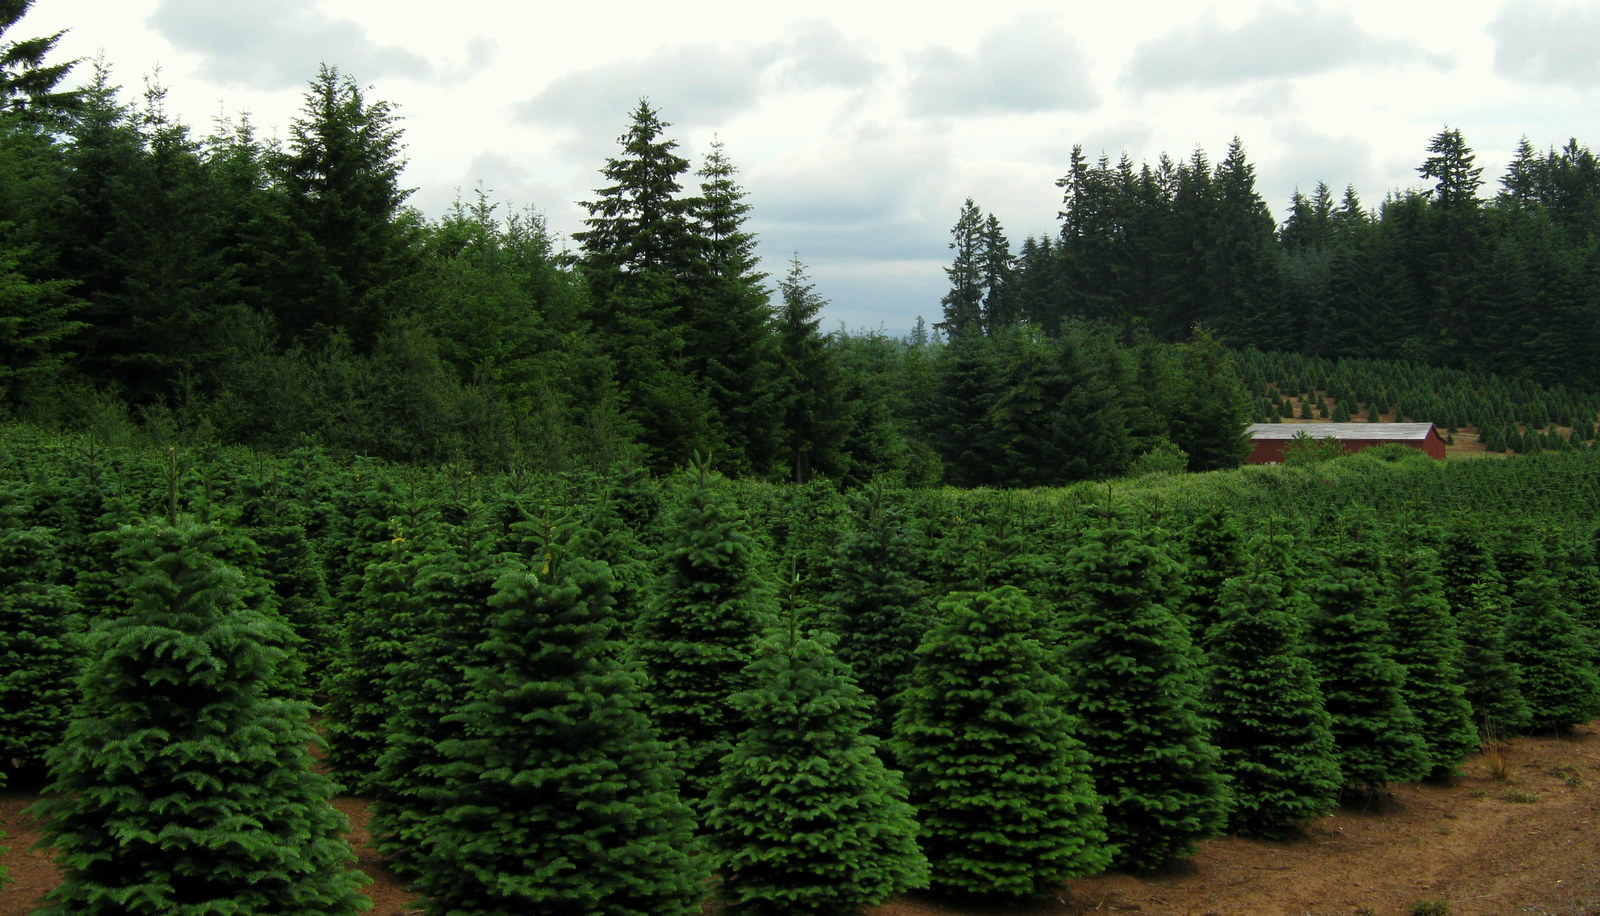 filechristmas trees near redland oregonjpg